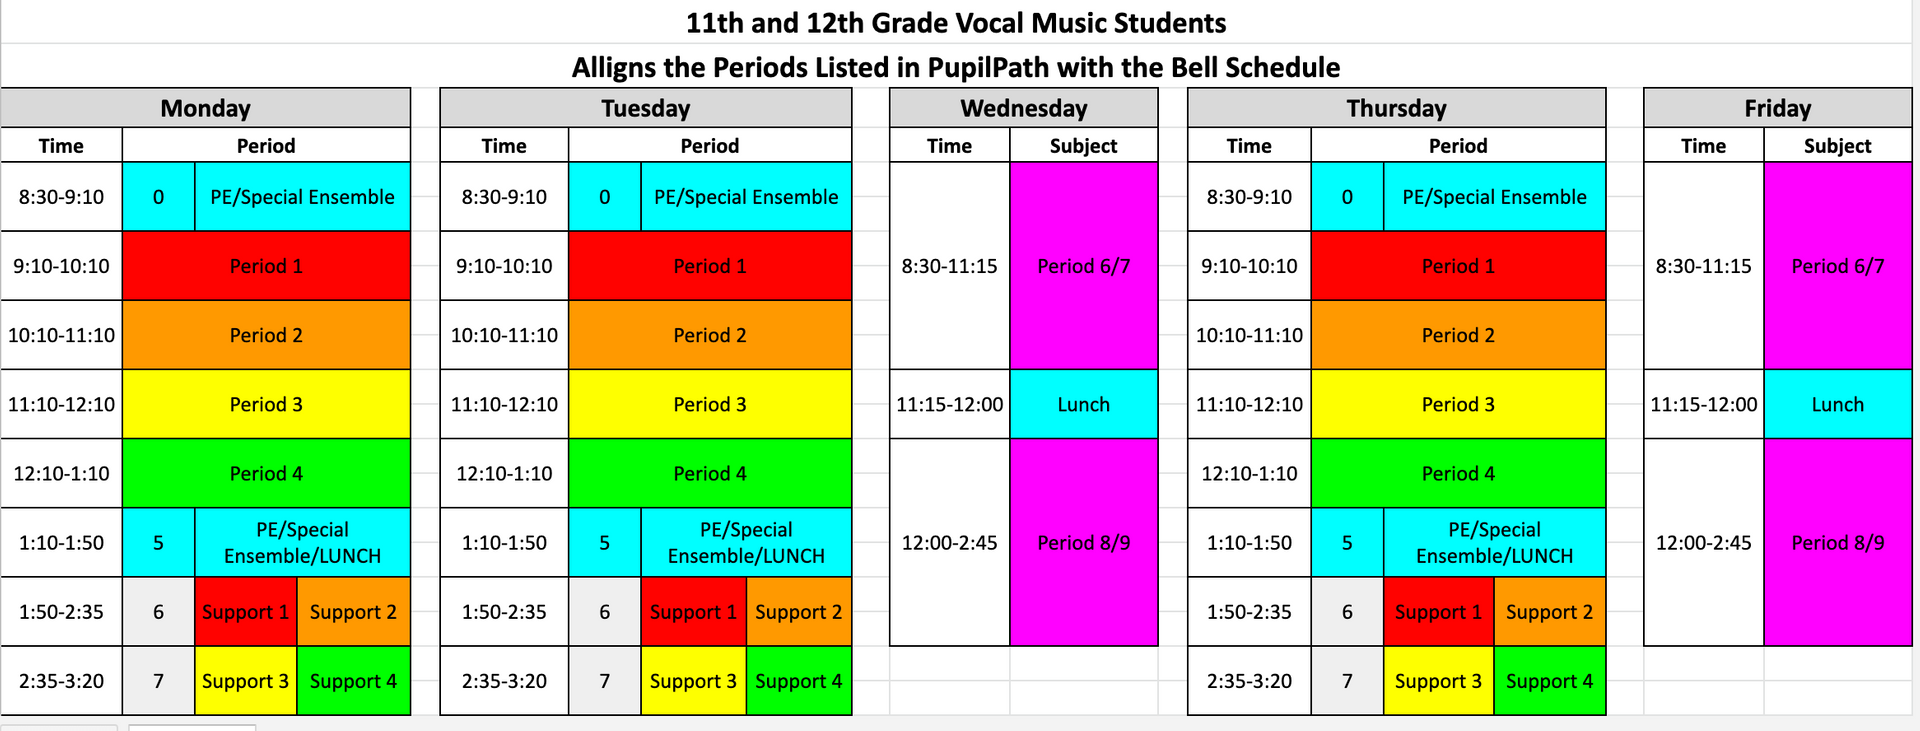 Vocal Bell Schedules Grades 11 and 12